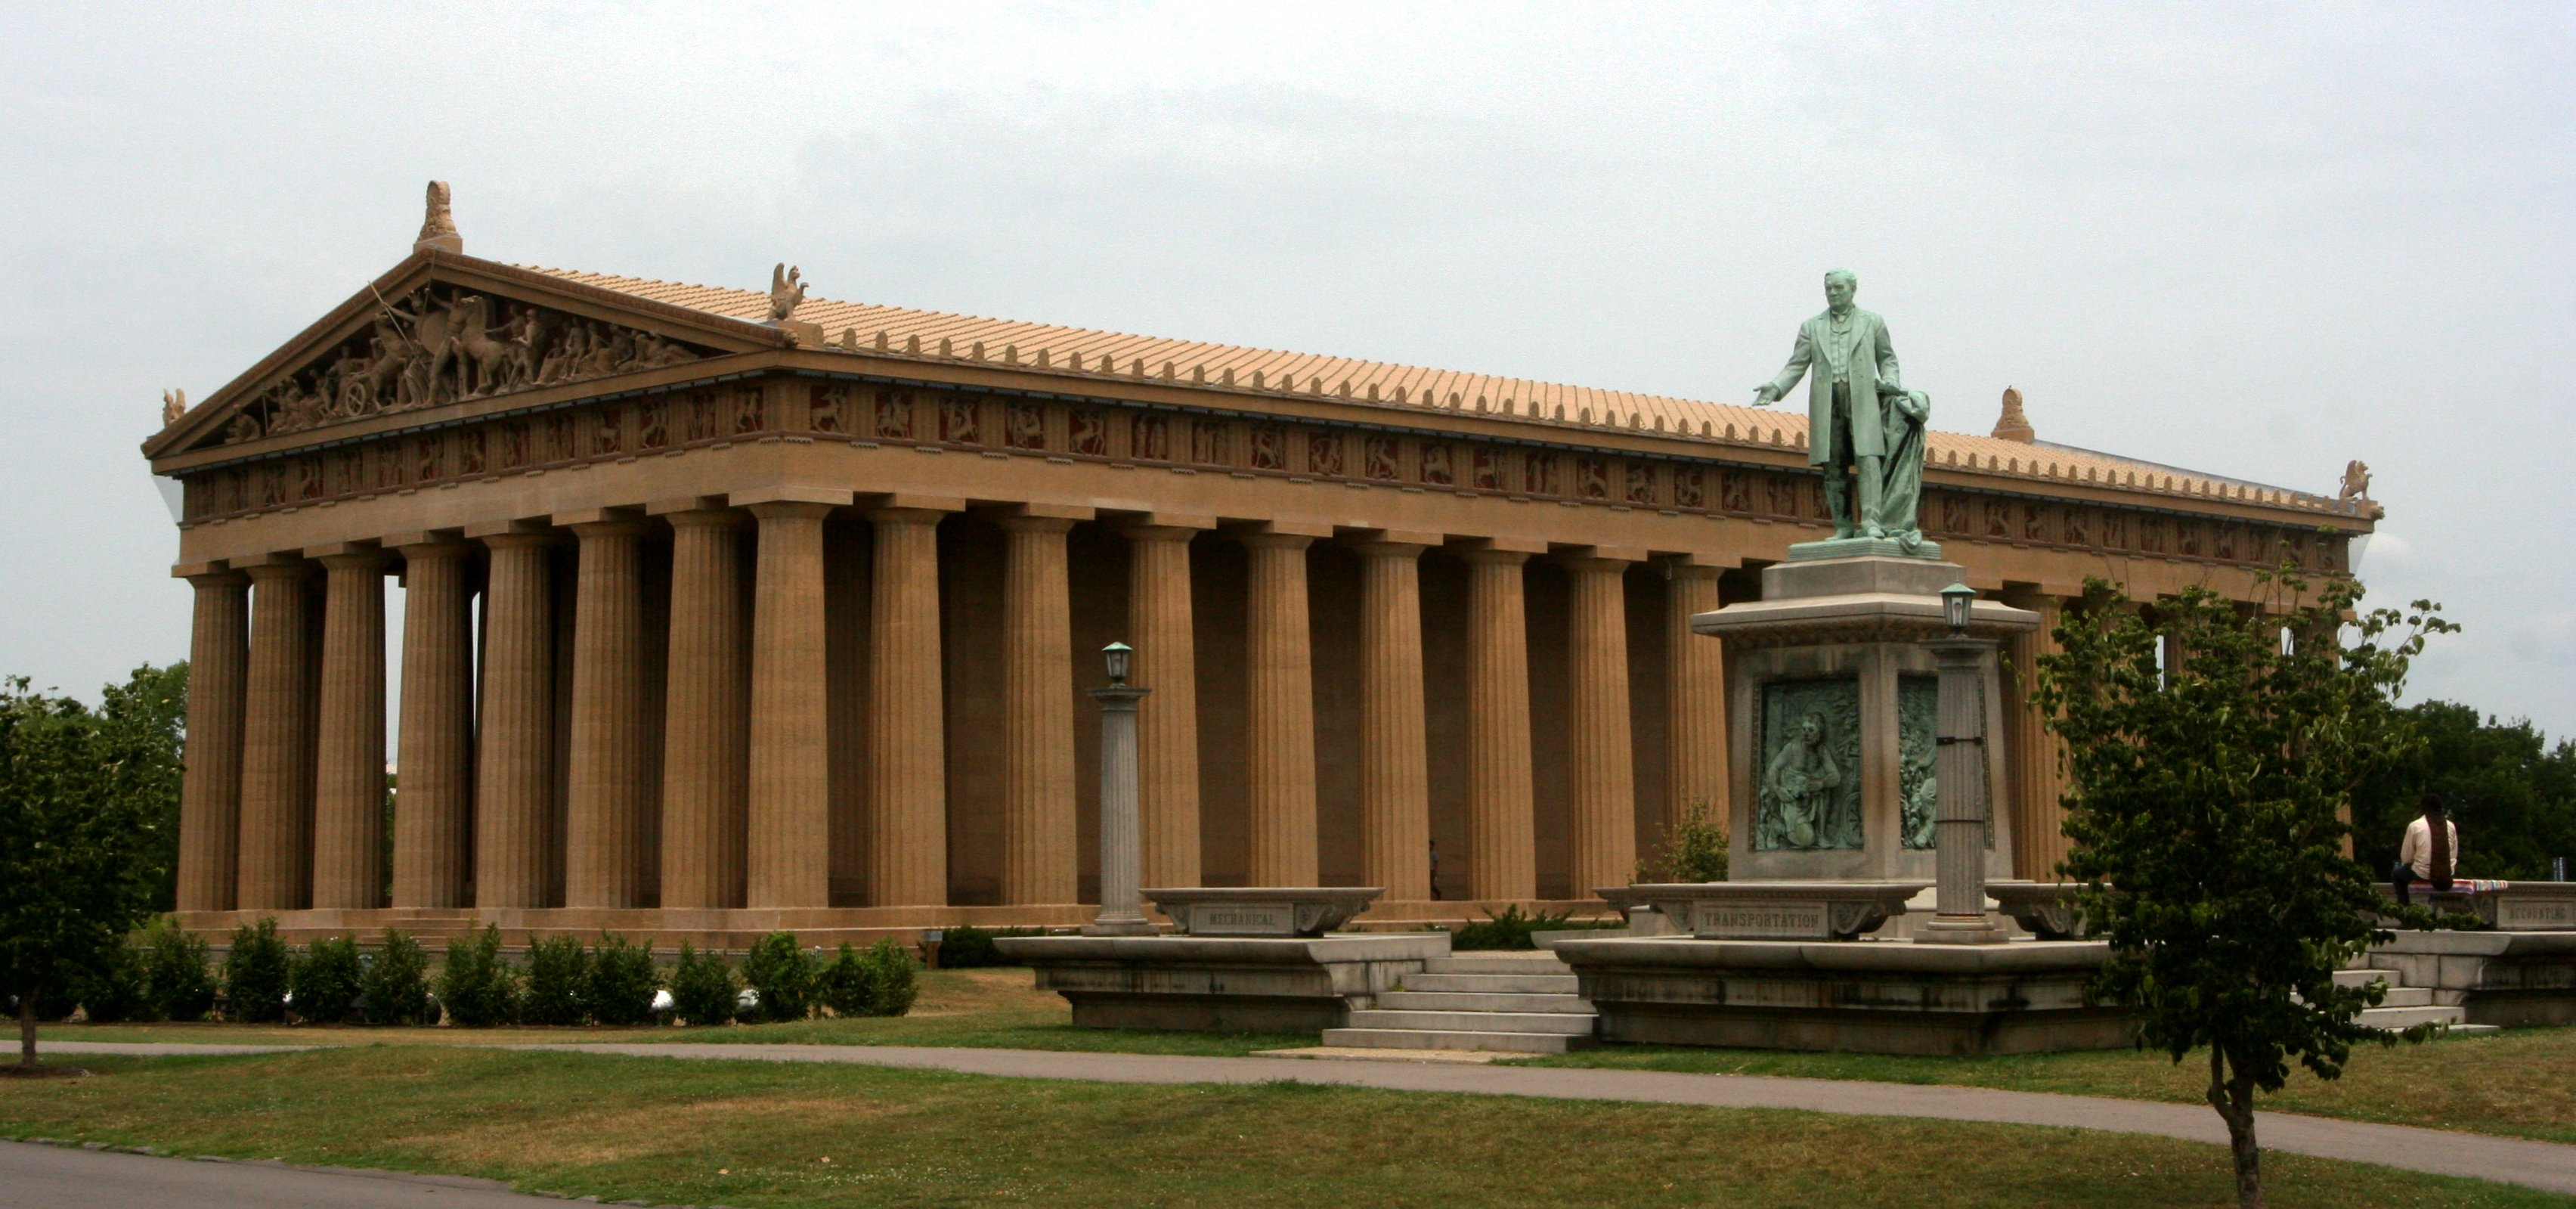 Nashville Parthenon from south.jpg